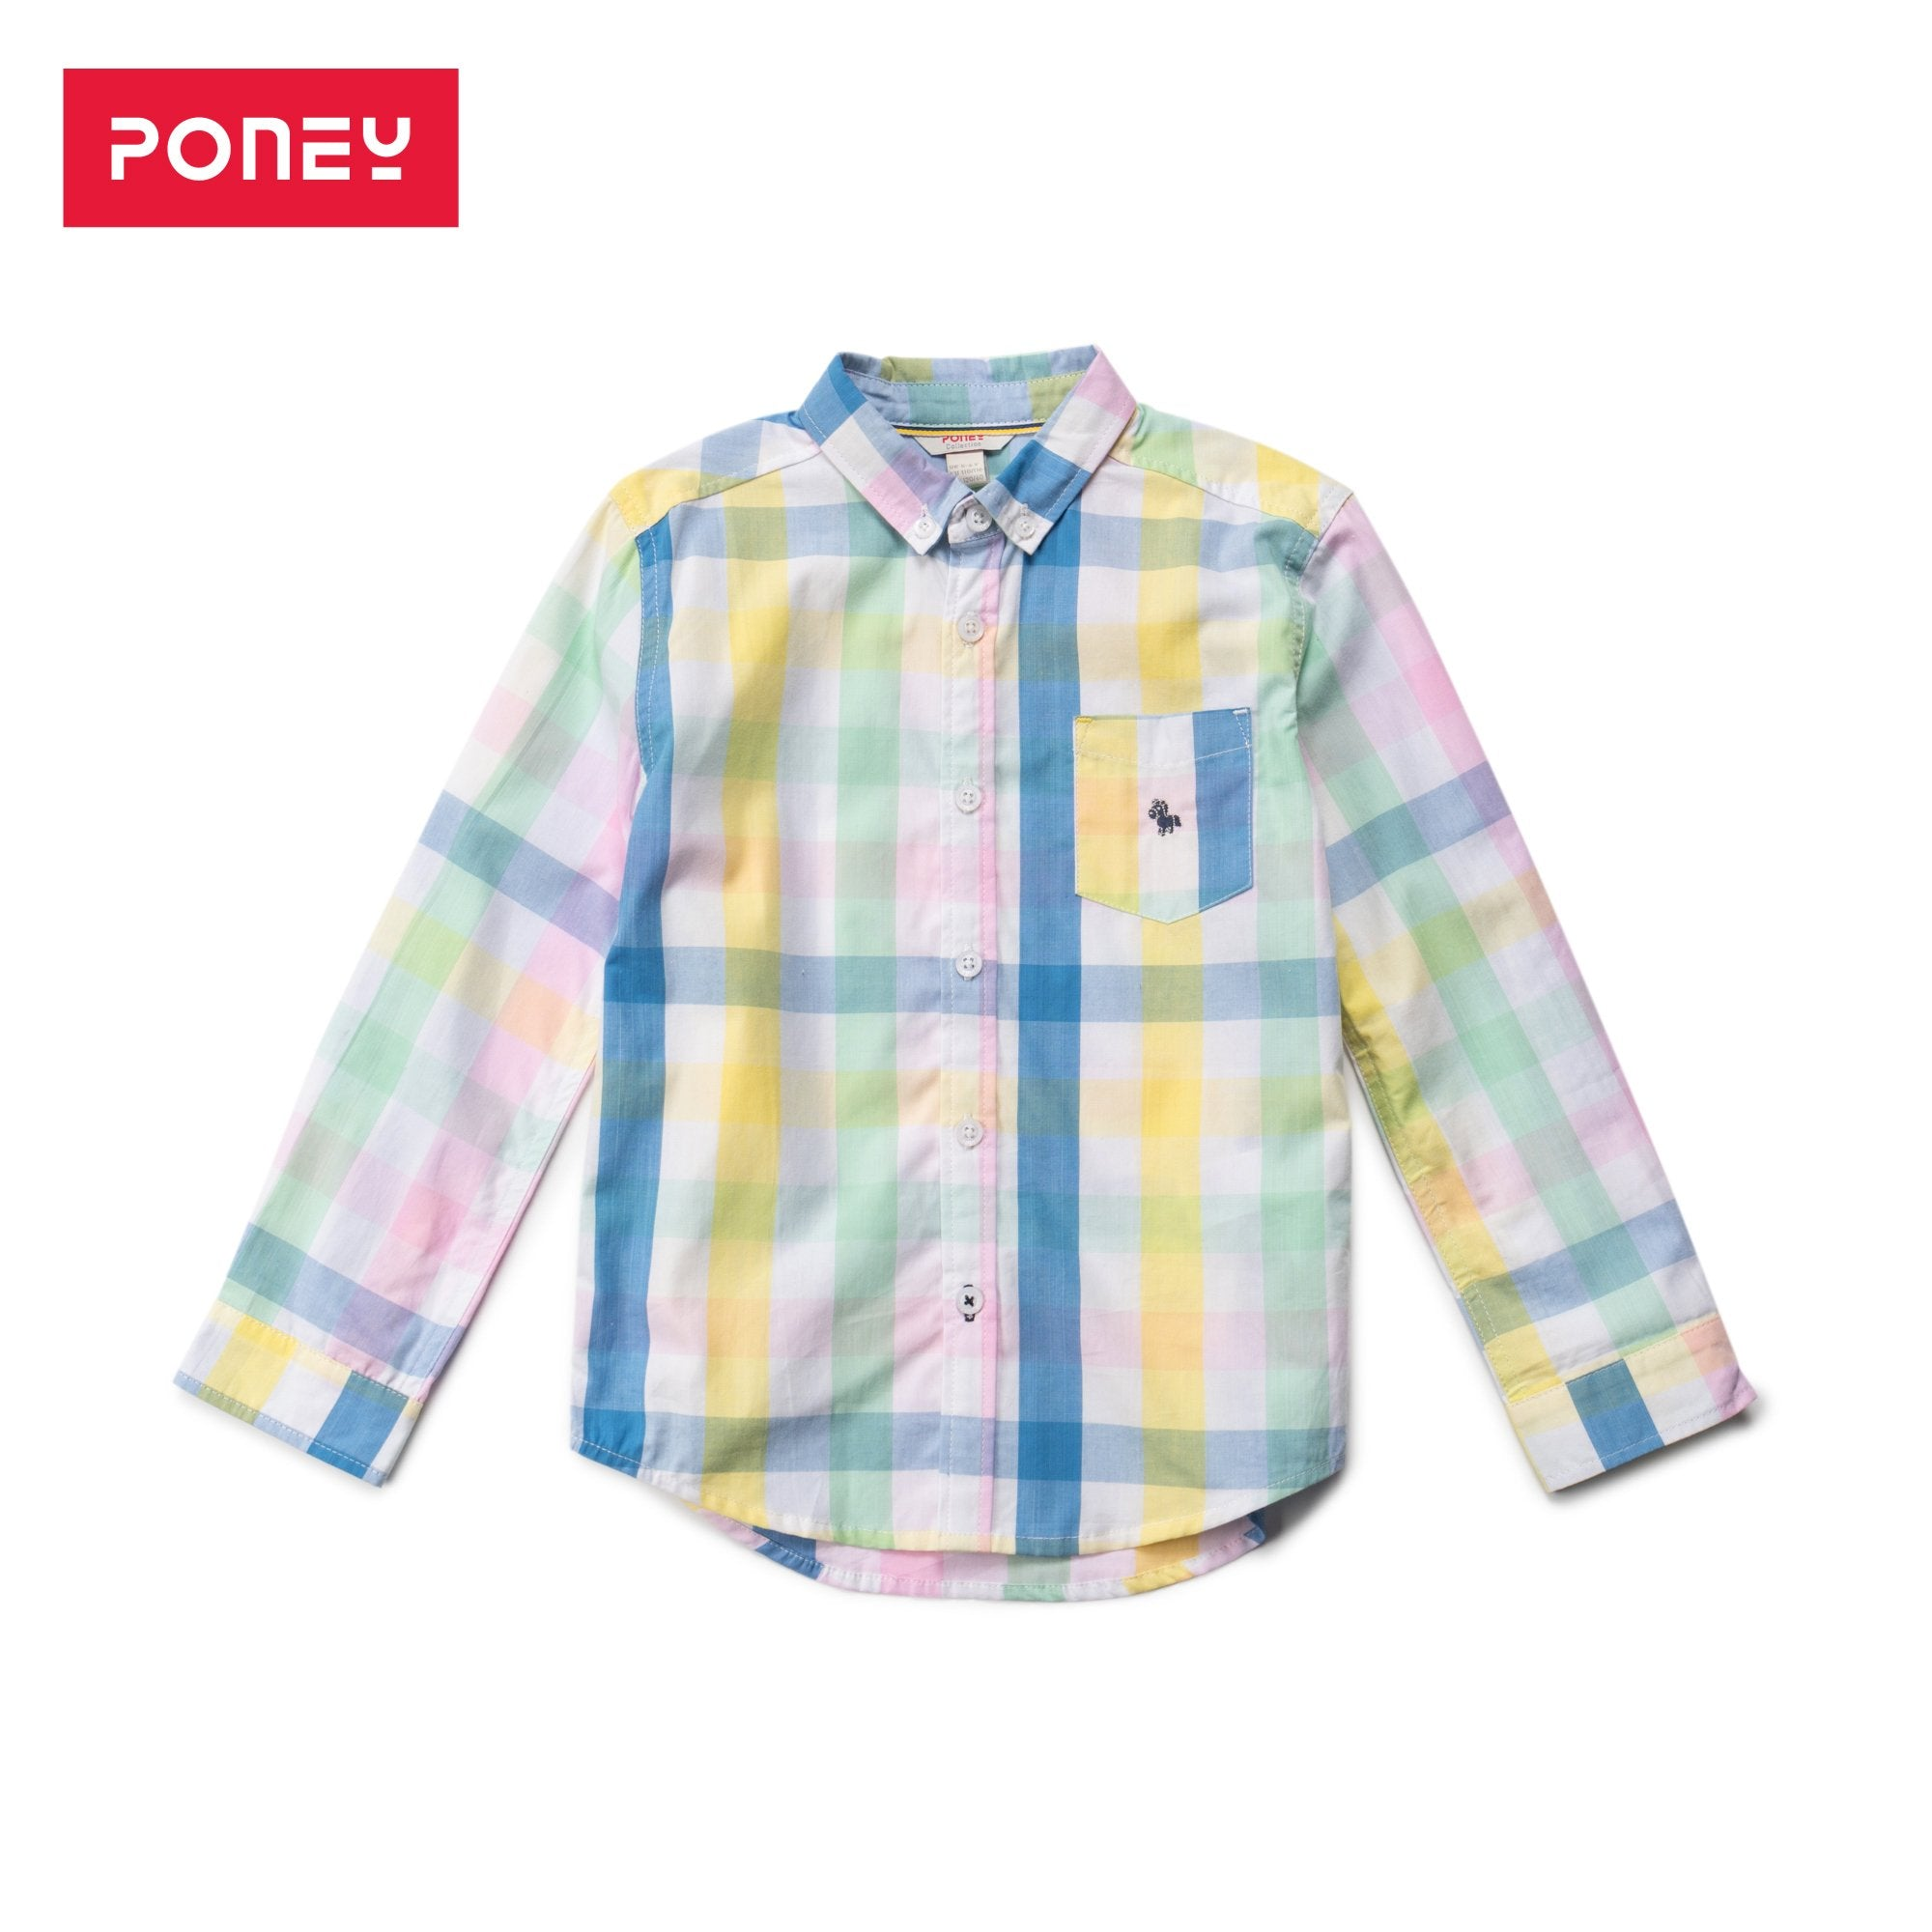 Poney Boys Long Sleeve Shirt 2066